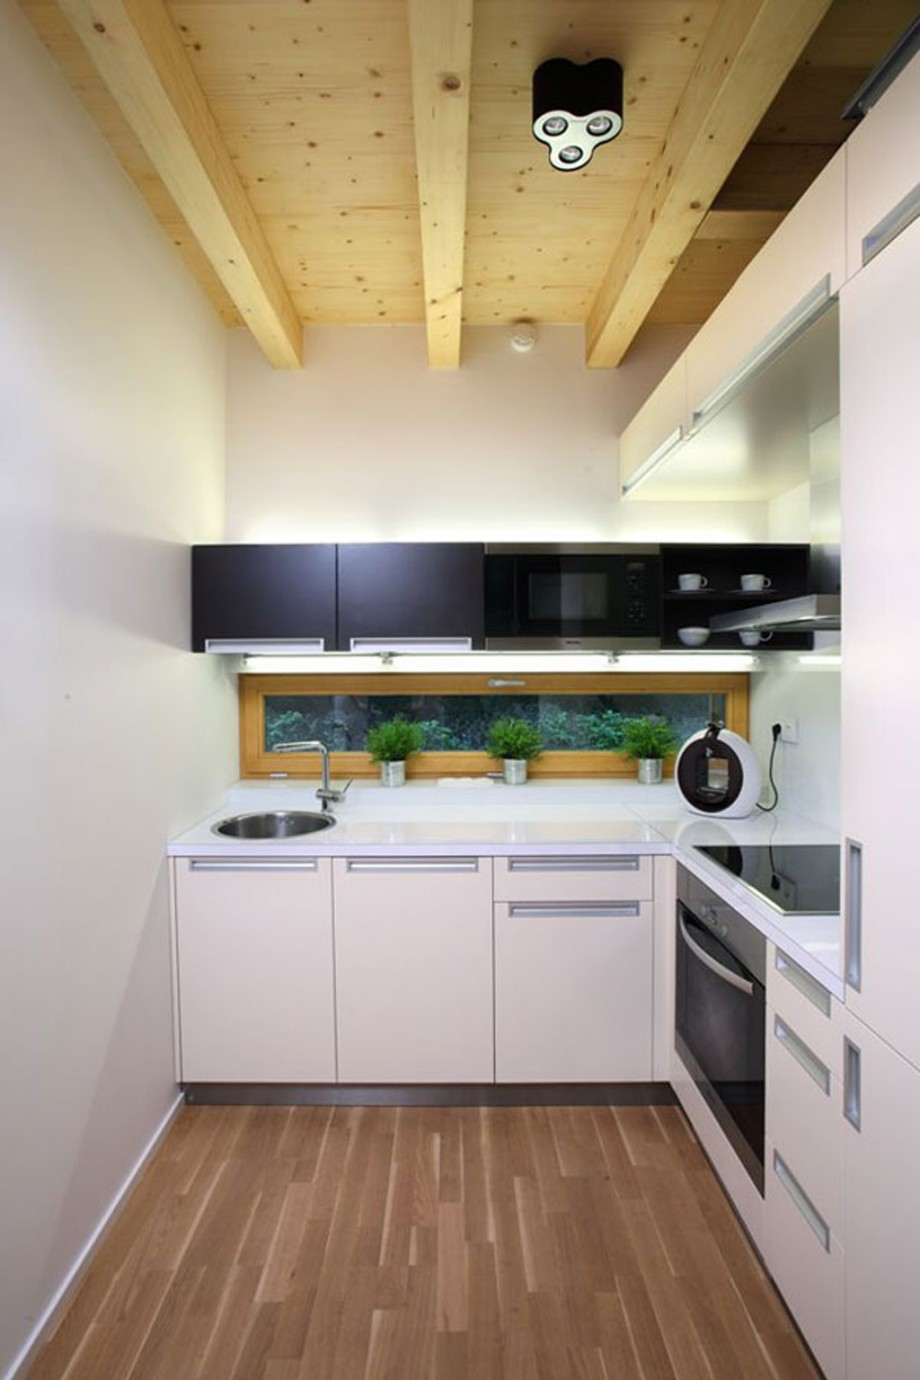 Space Saving Kitchen Space Saving Designs For Small Kitchens Space Saving Ideas For